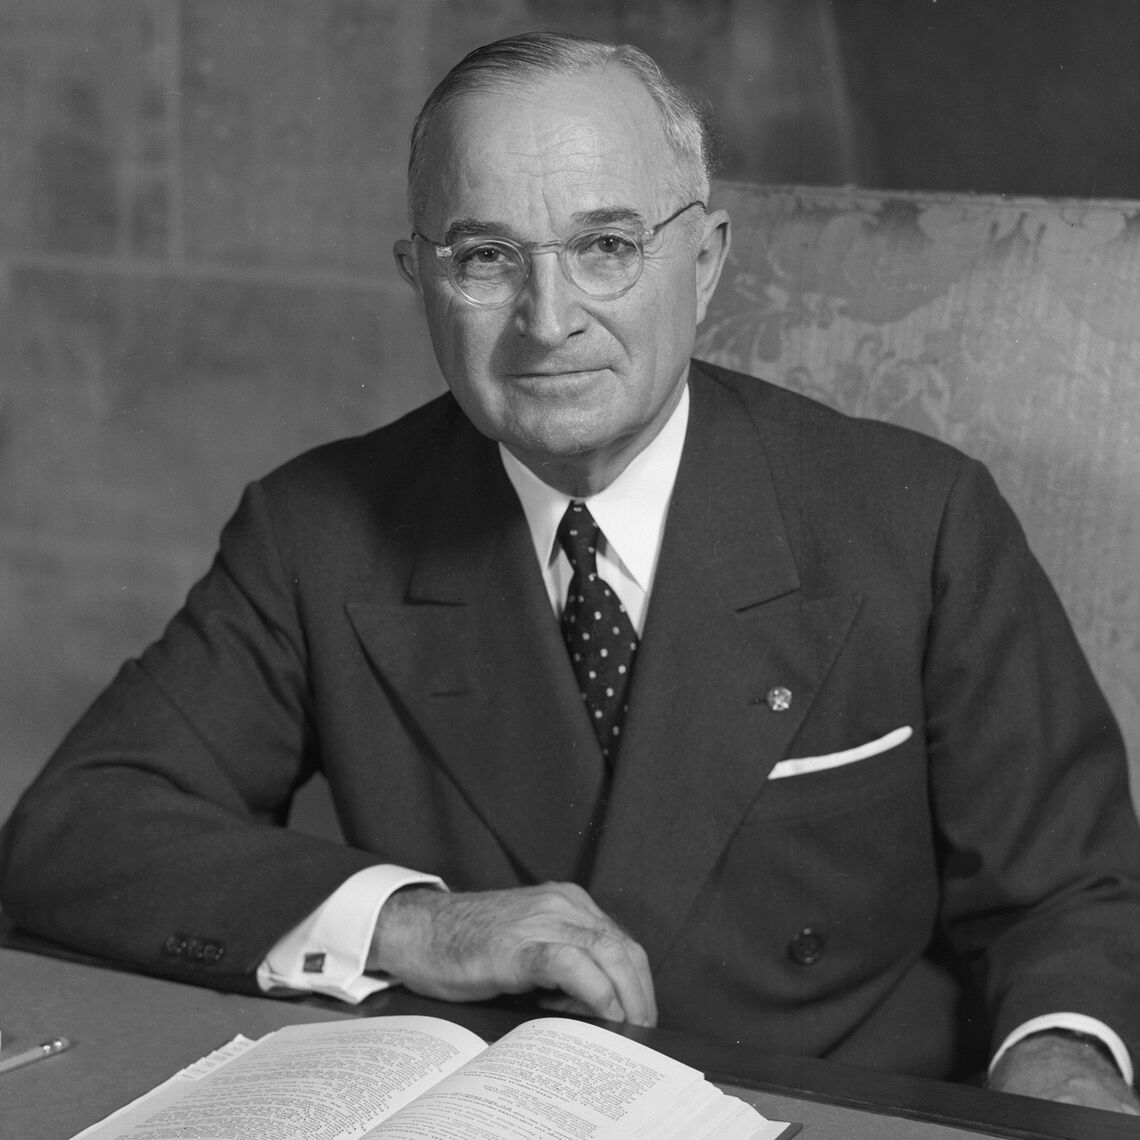 Harry S. Truman, 33rd president of the United States.